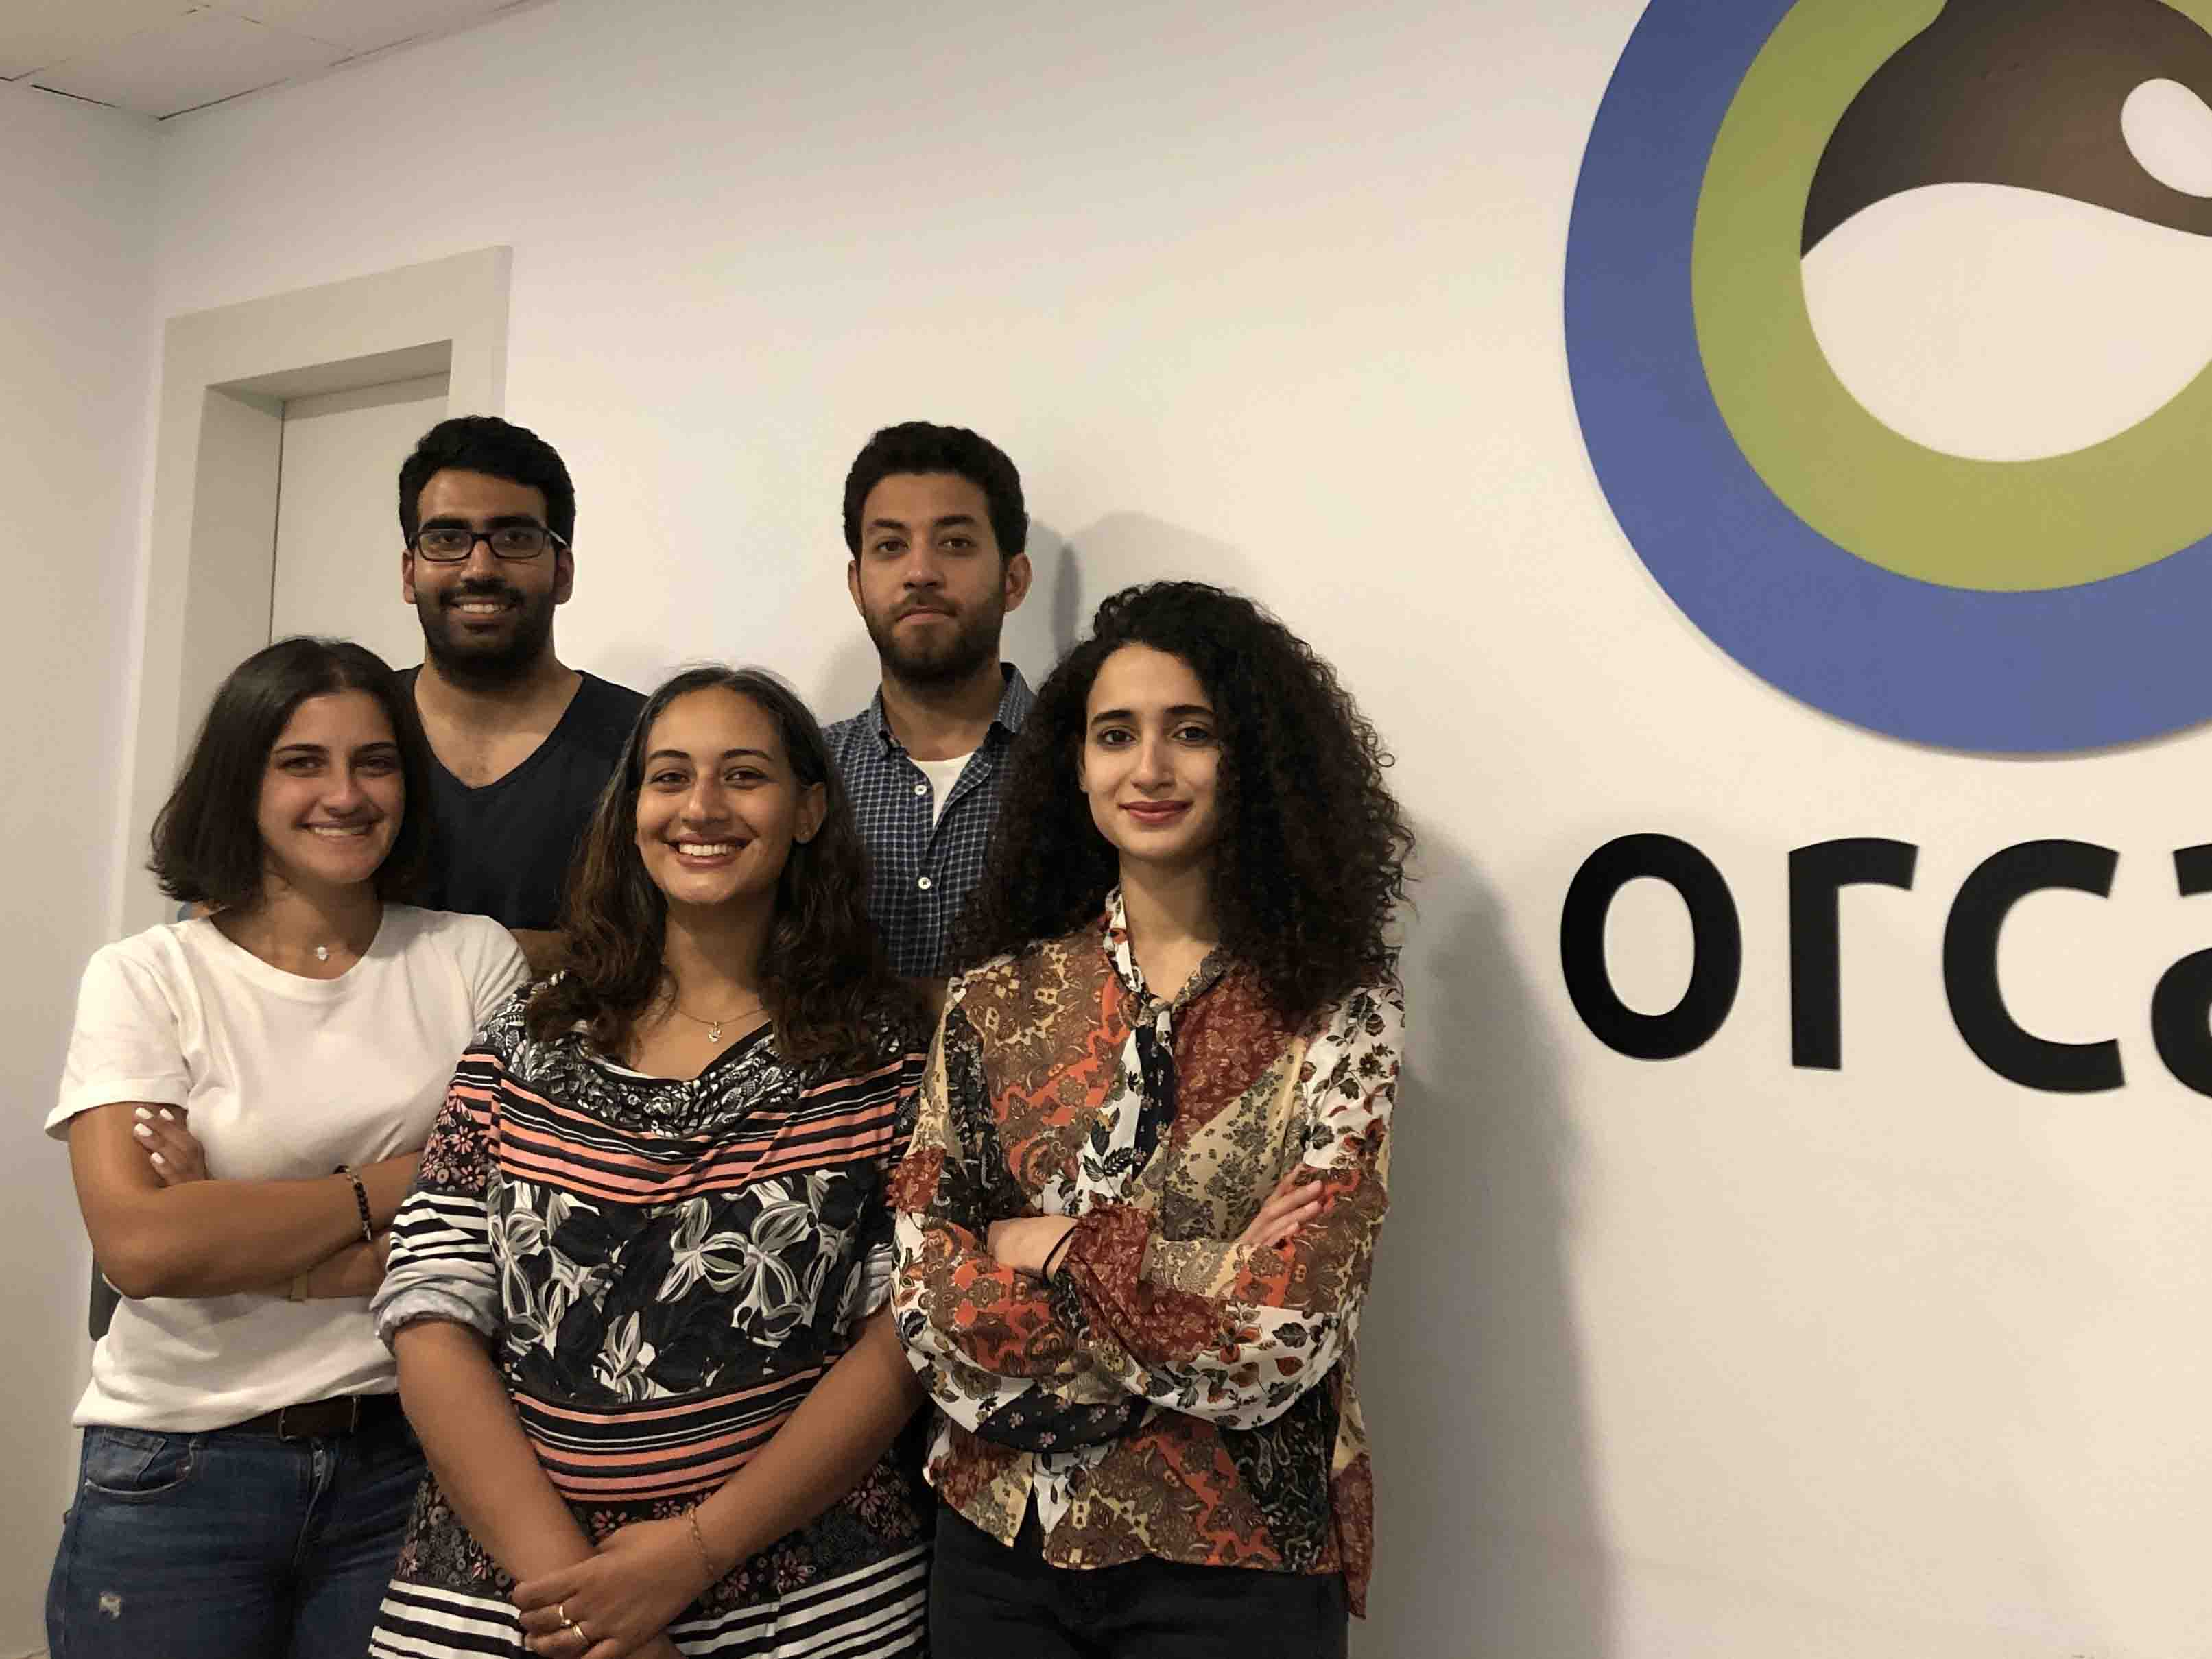 Orcas, ed-tech marketplace, raises $500K in pre-Series A round led by Algebra Ventures